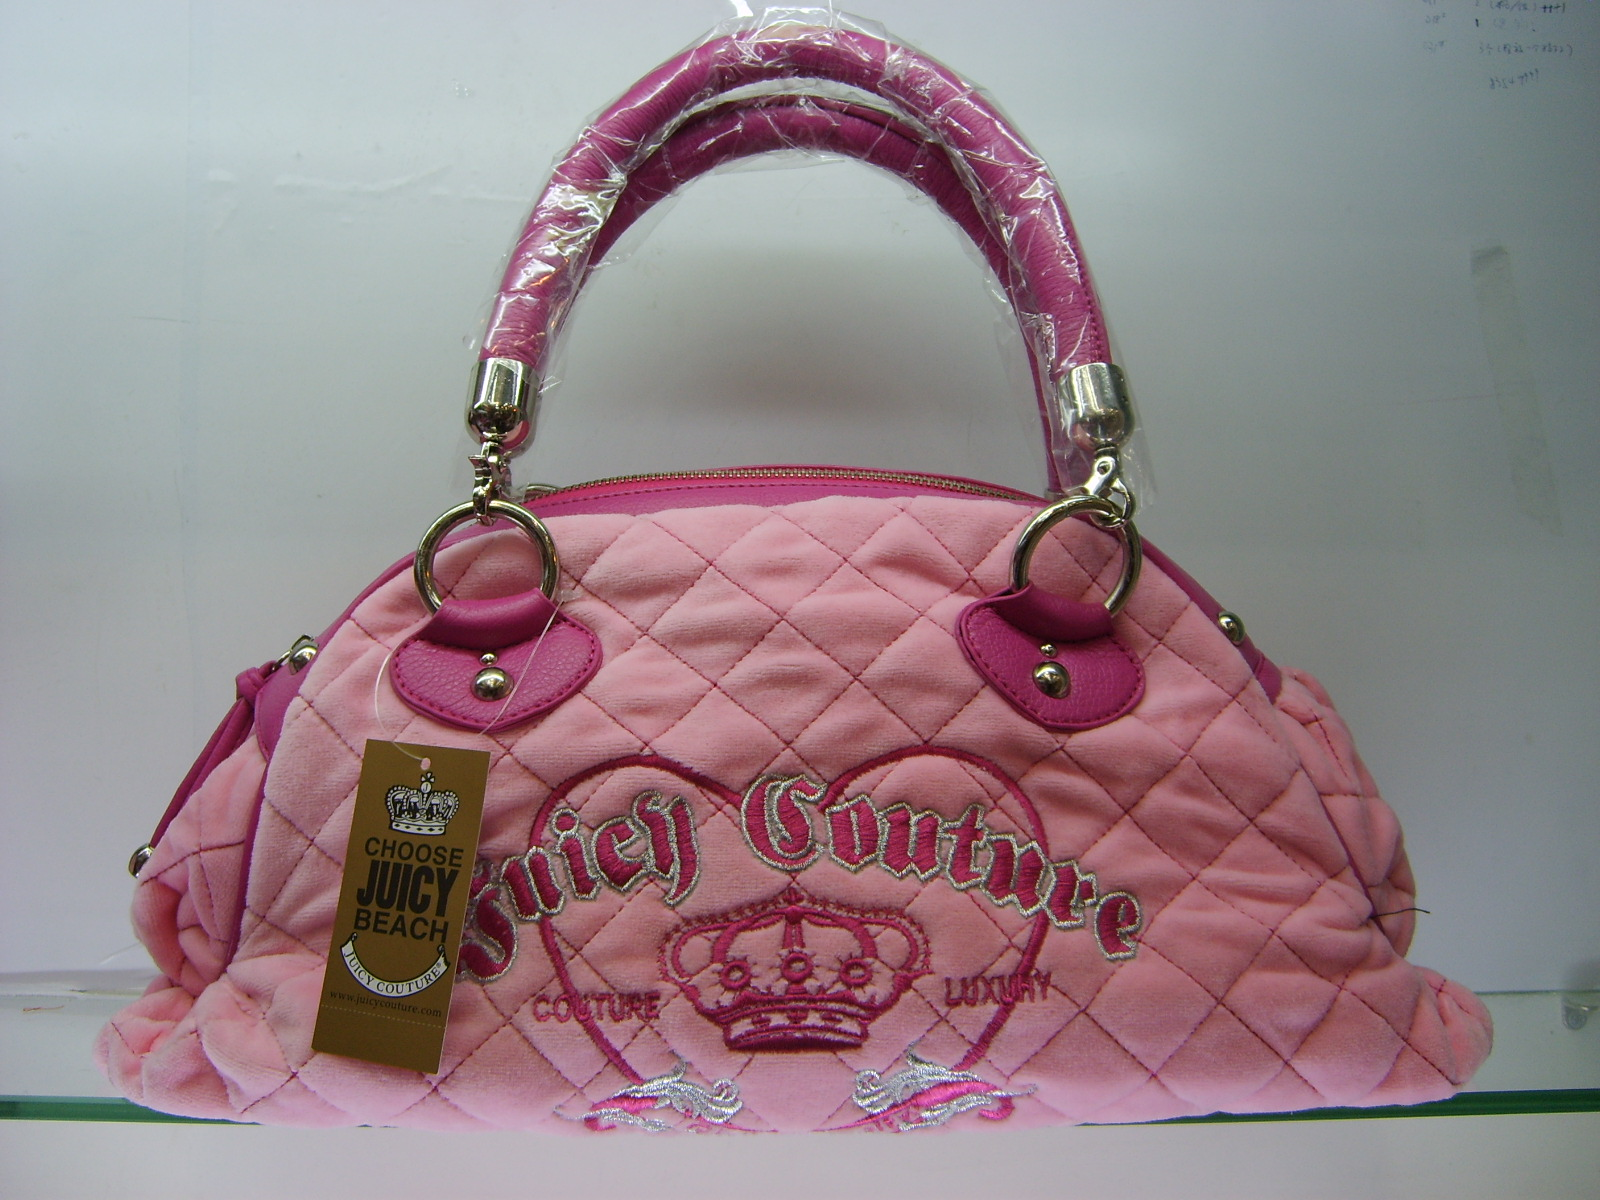 Juicy Couture  127 Bags Women's Tote Purse Handbags